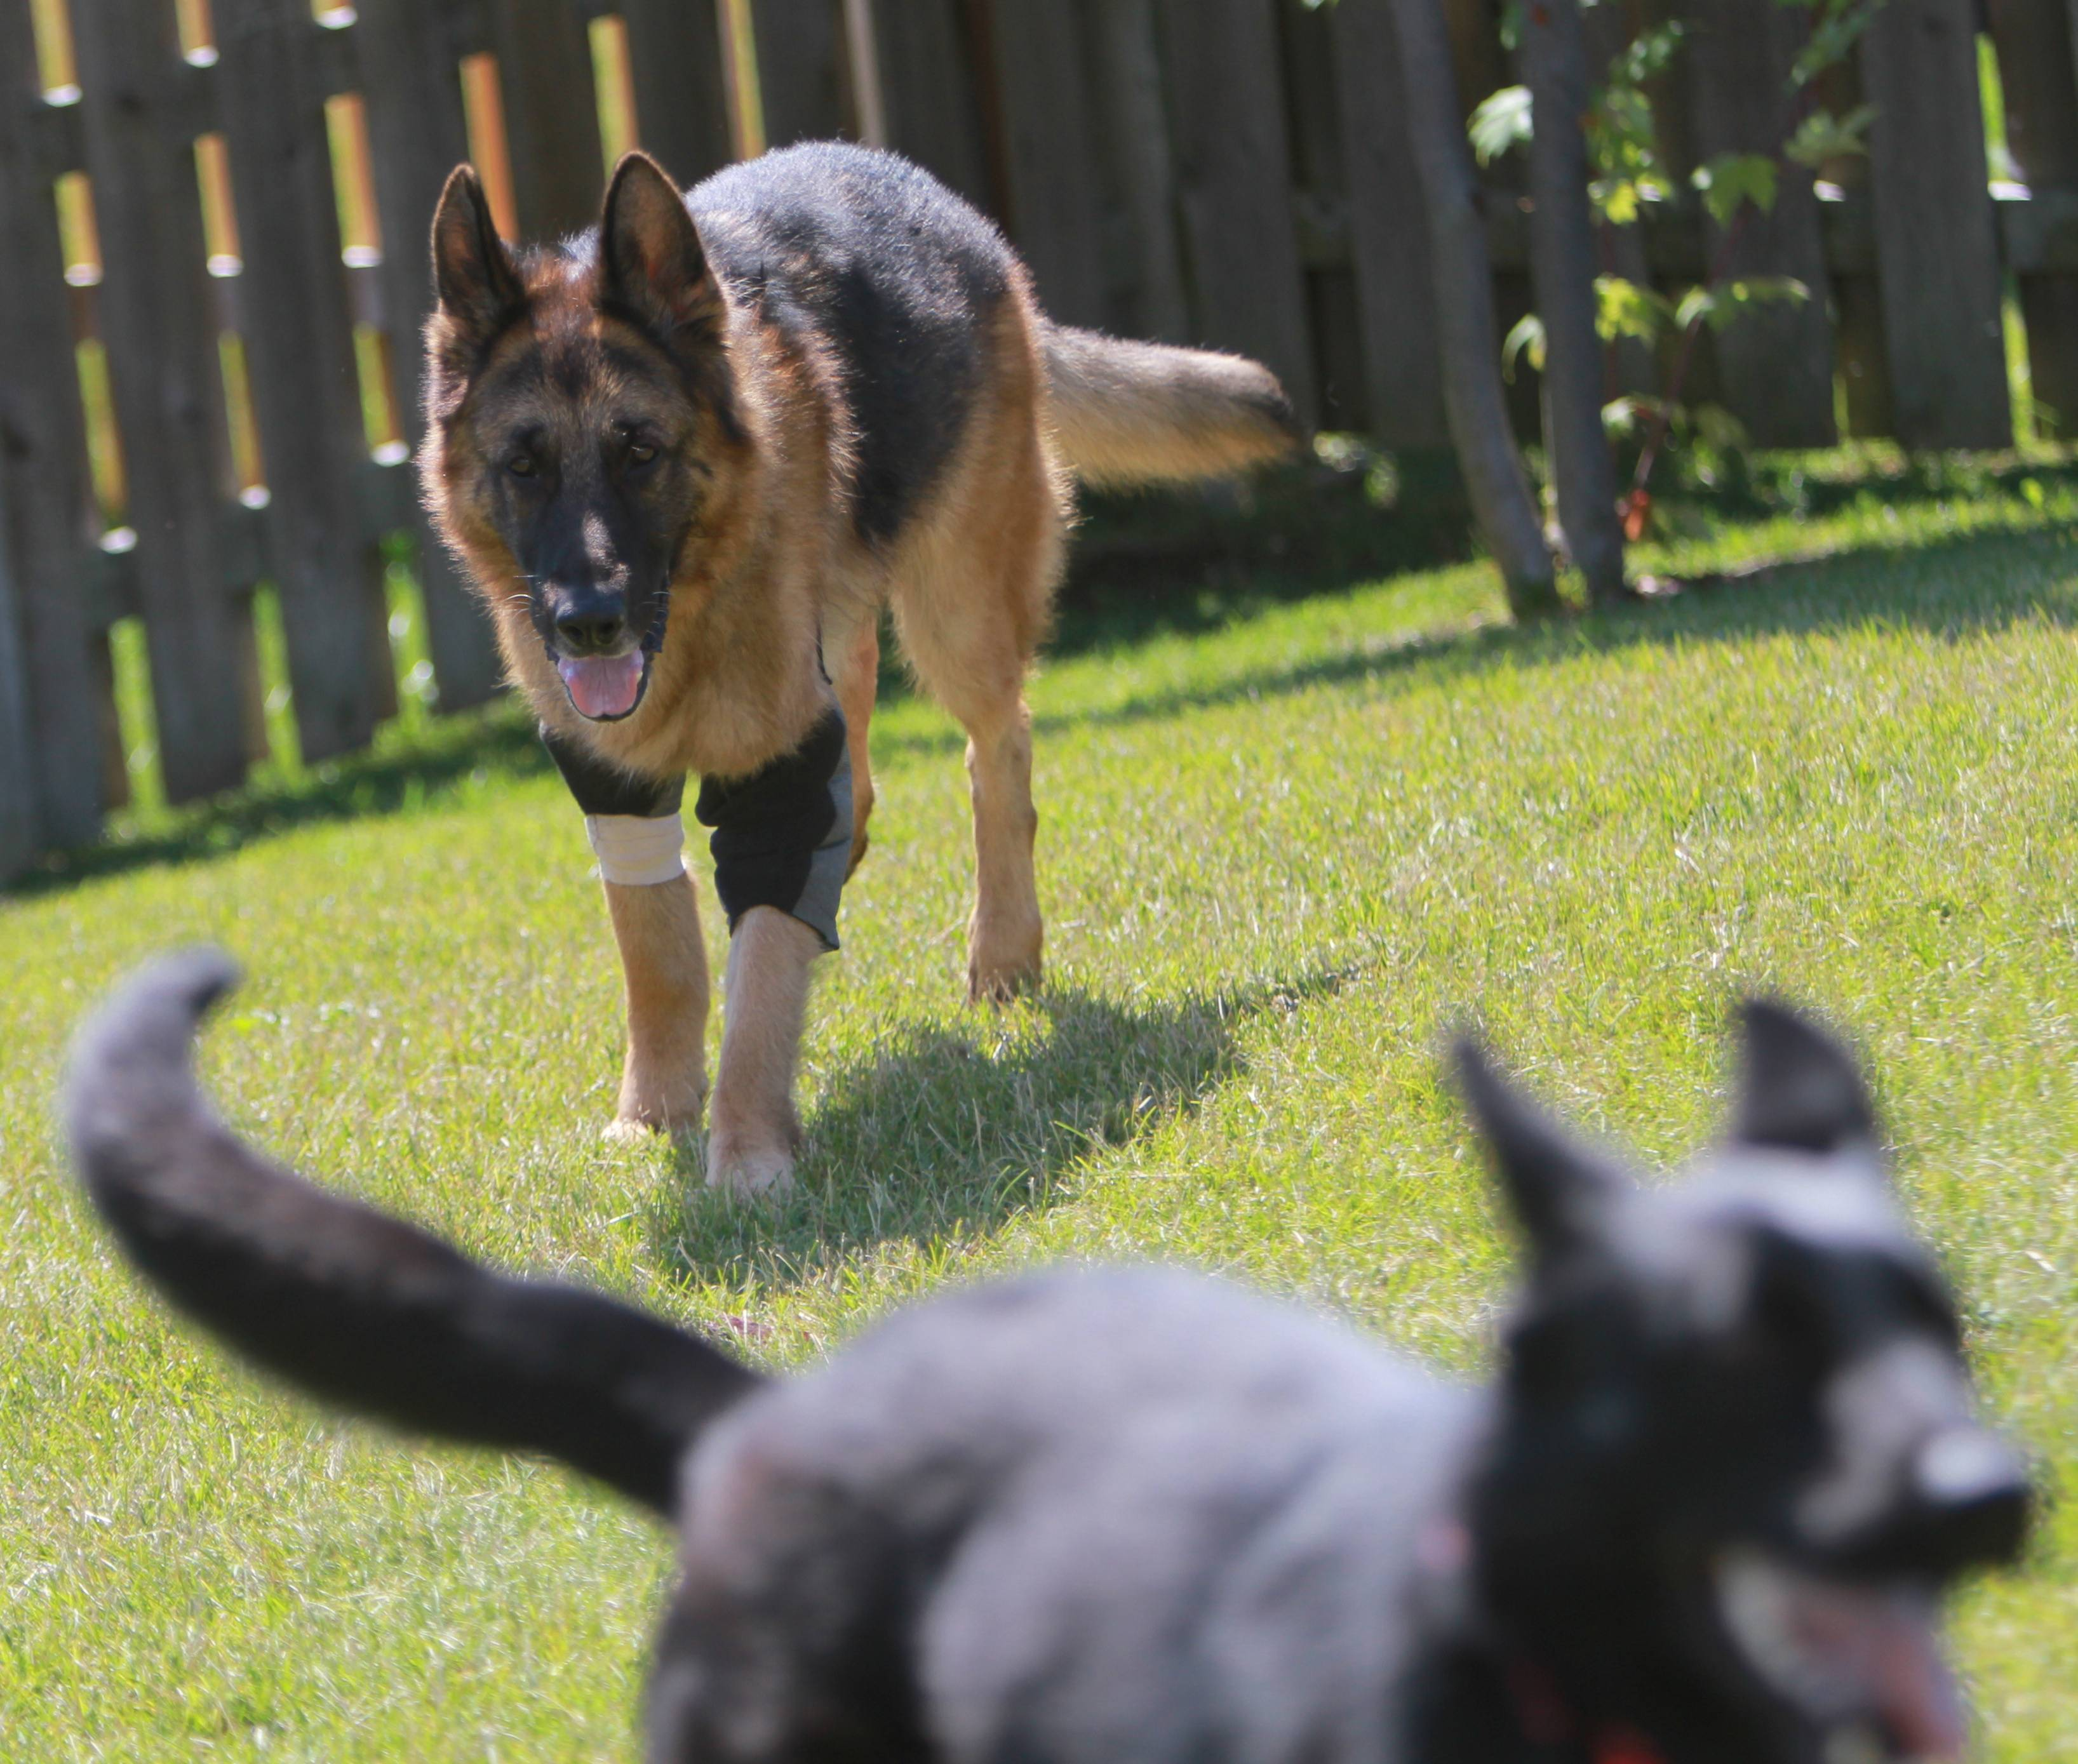 Shane, chasing Talia, retired after nine years on the Gurnee police force due to issues with his elbows, including arthritis and skin infections.